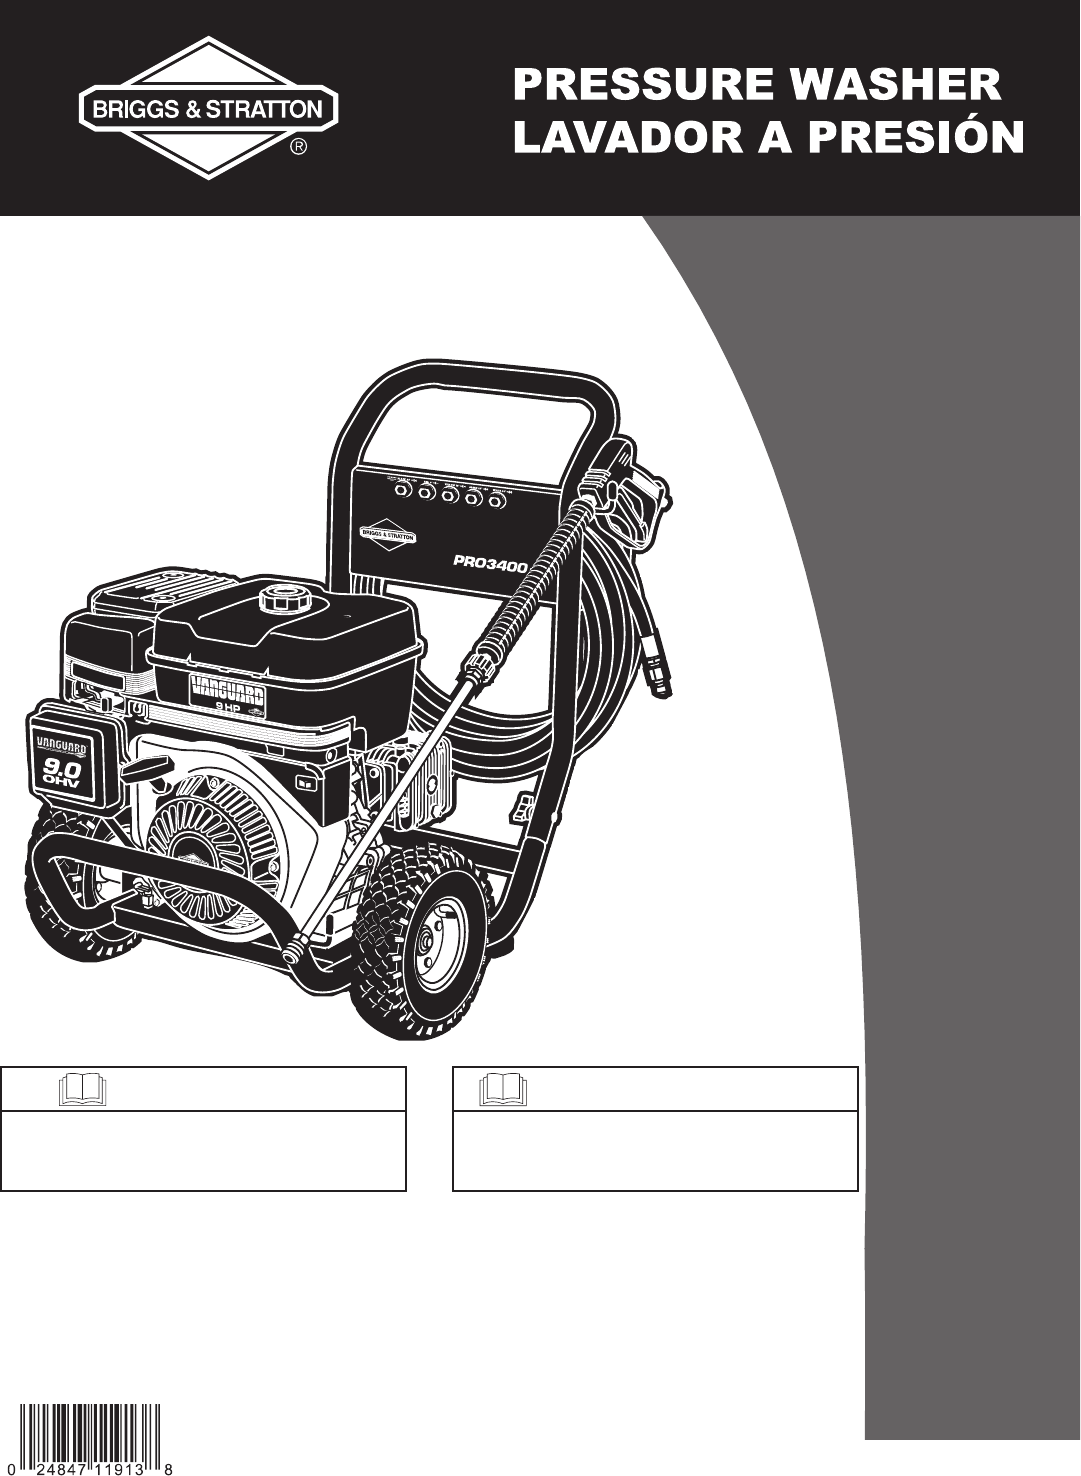 Briggs And Stratton Power Products 1019 1 Manual Guide